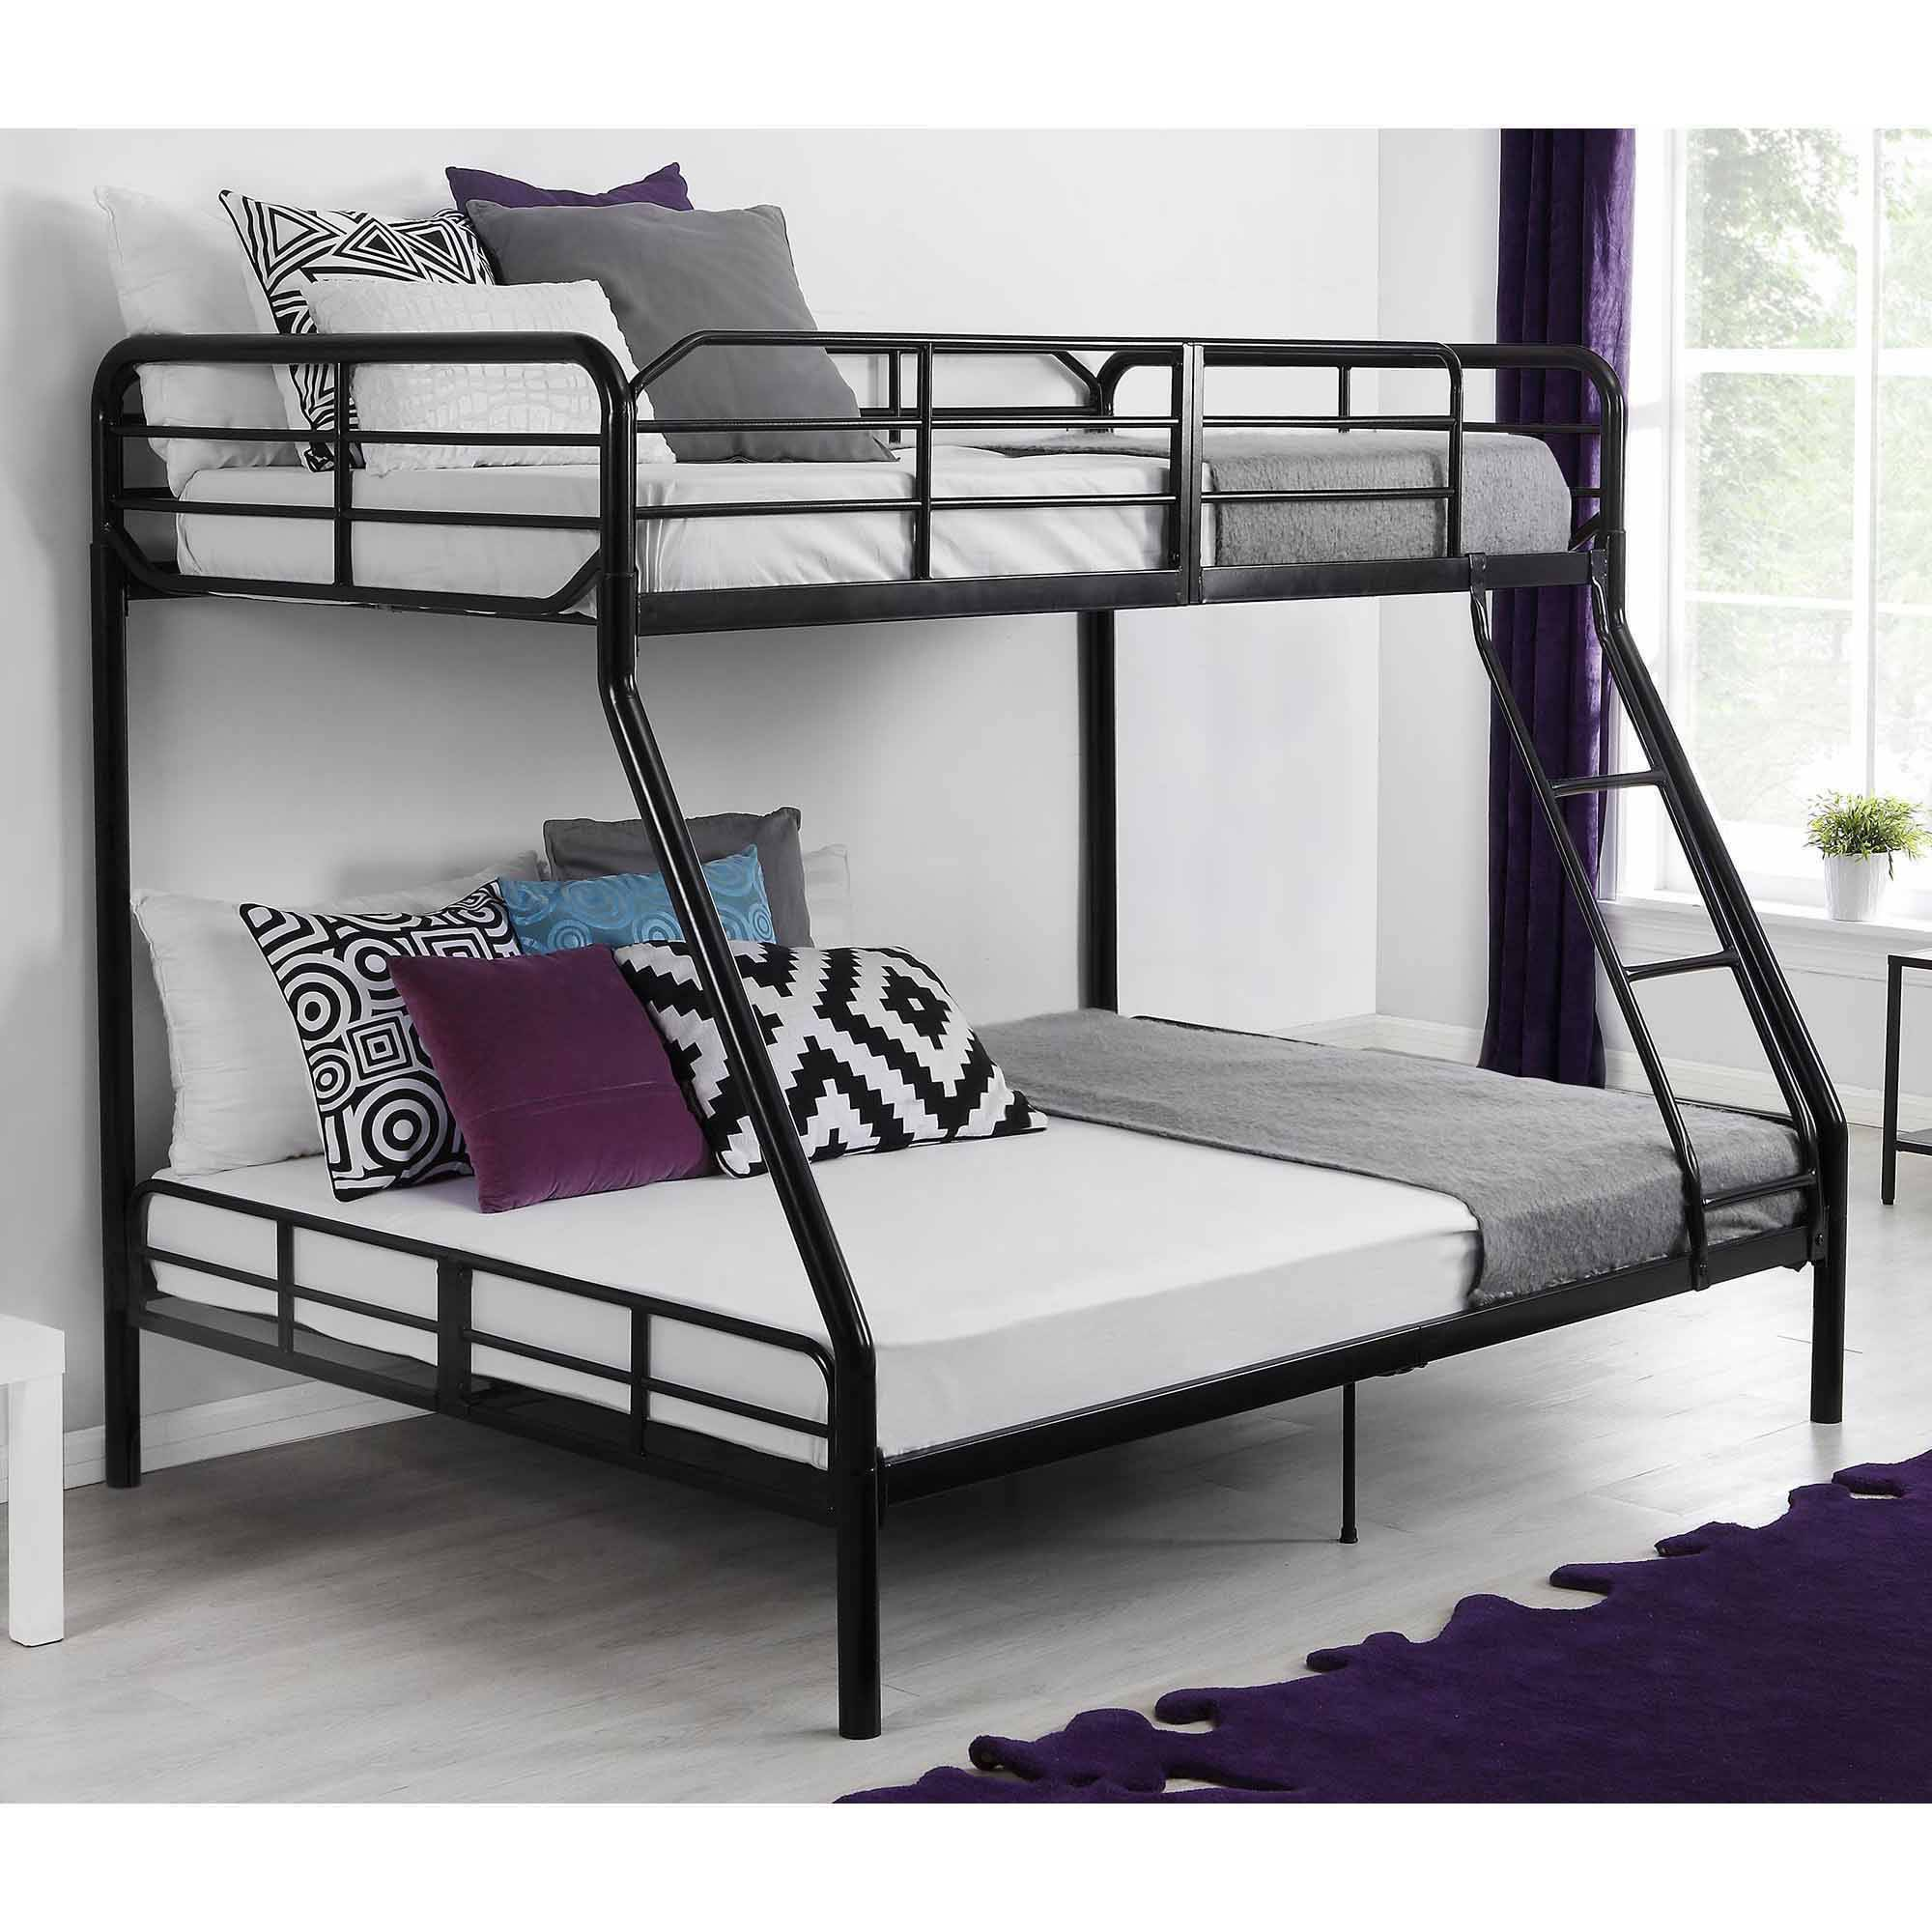 queen size metal bed frame walmart 17 download